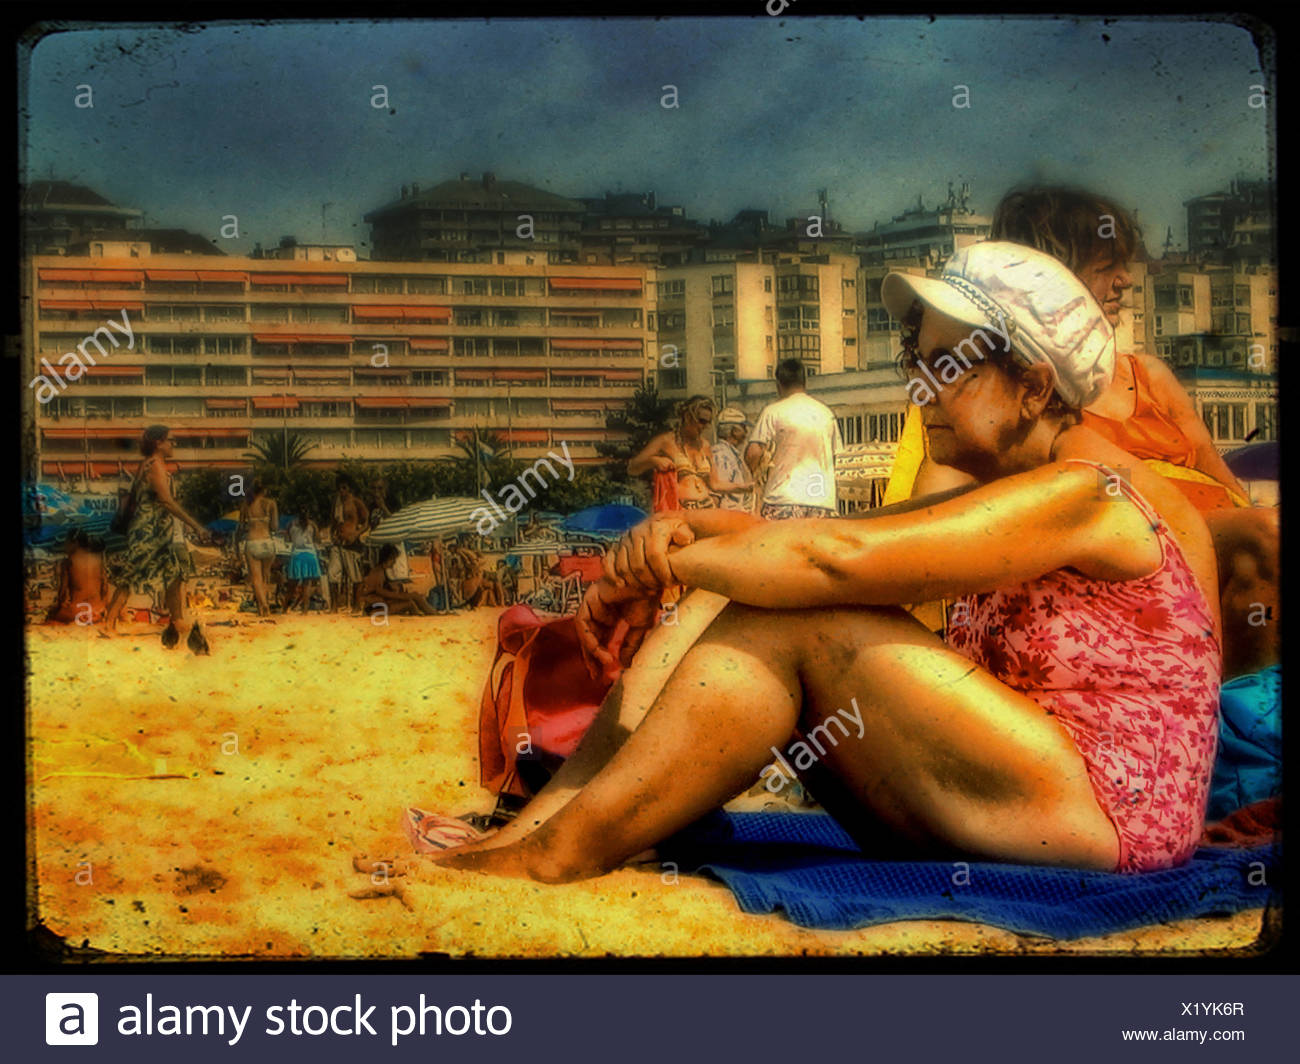 An old woman wearing a bathing costume and white hat sitting on a beach with hotels in the background - Stock Image